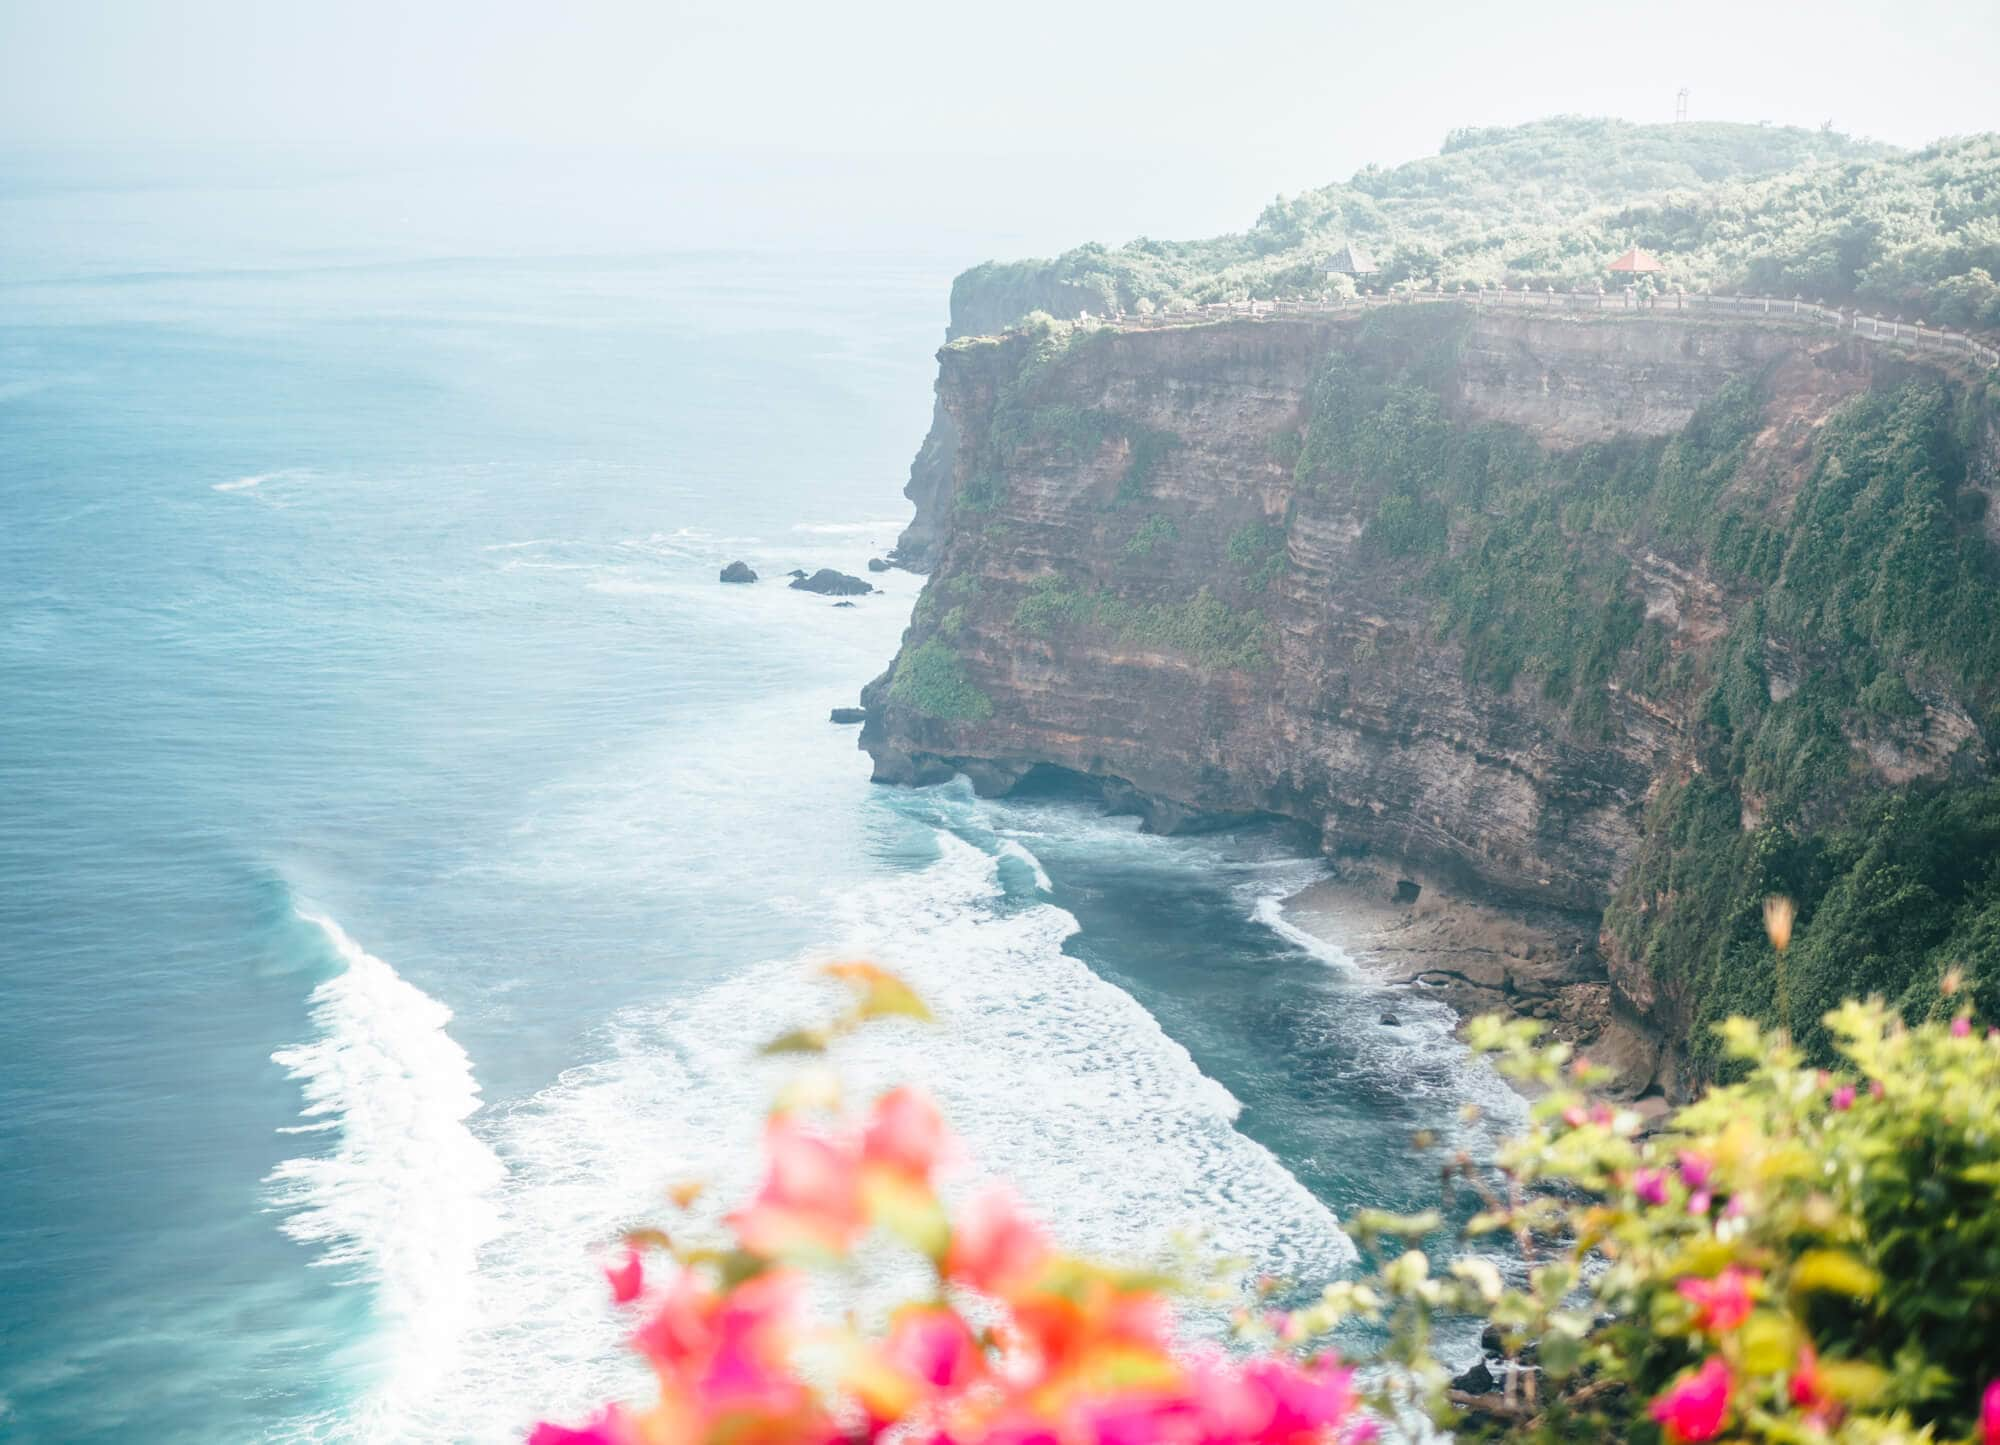 Amazing view from Pura Luhur Uluwatu temple in Bali - The ultimate Bali Bucket List 2018